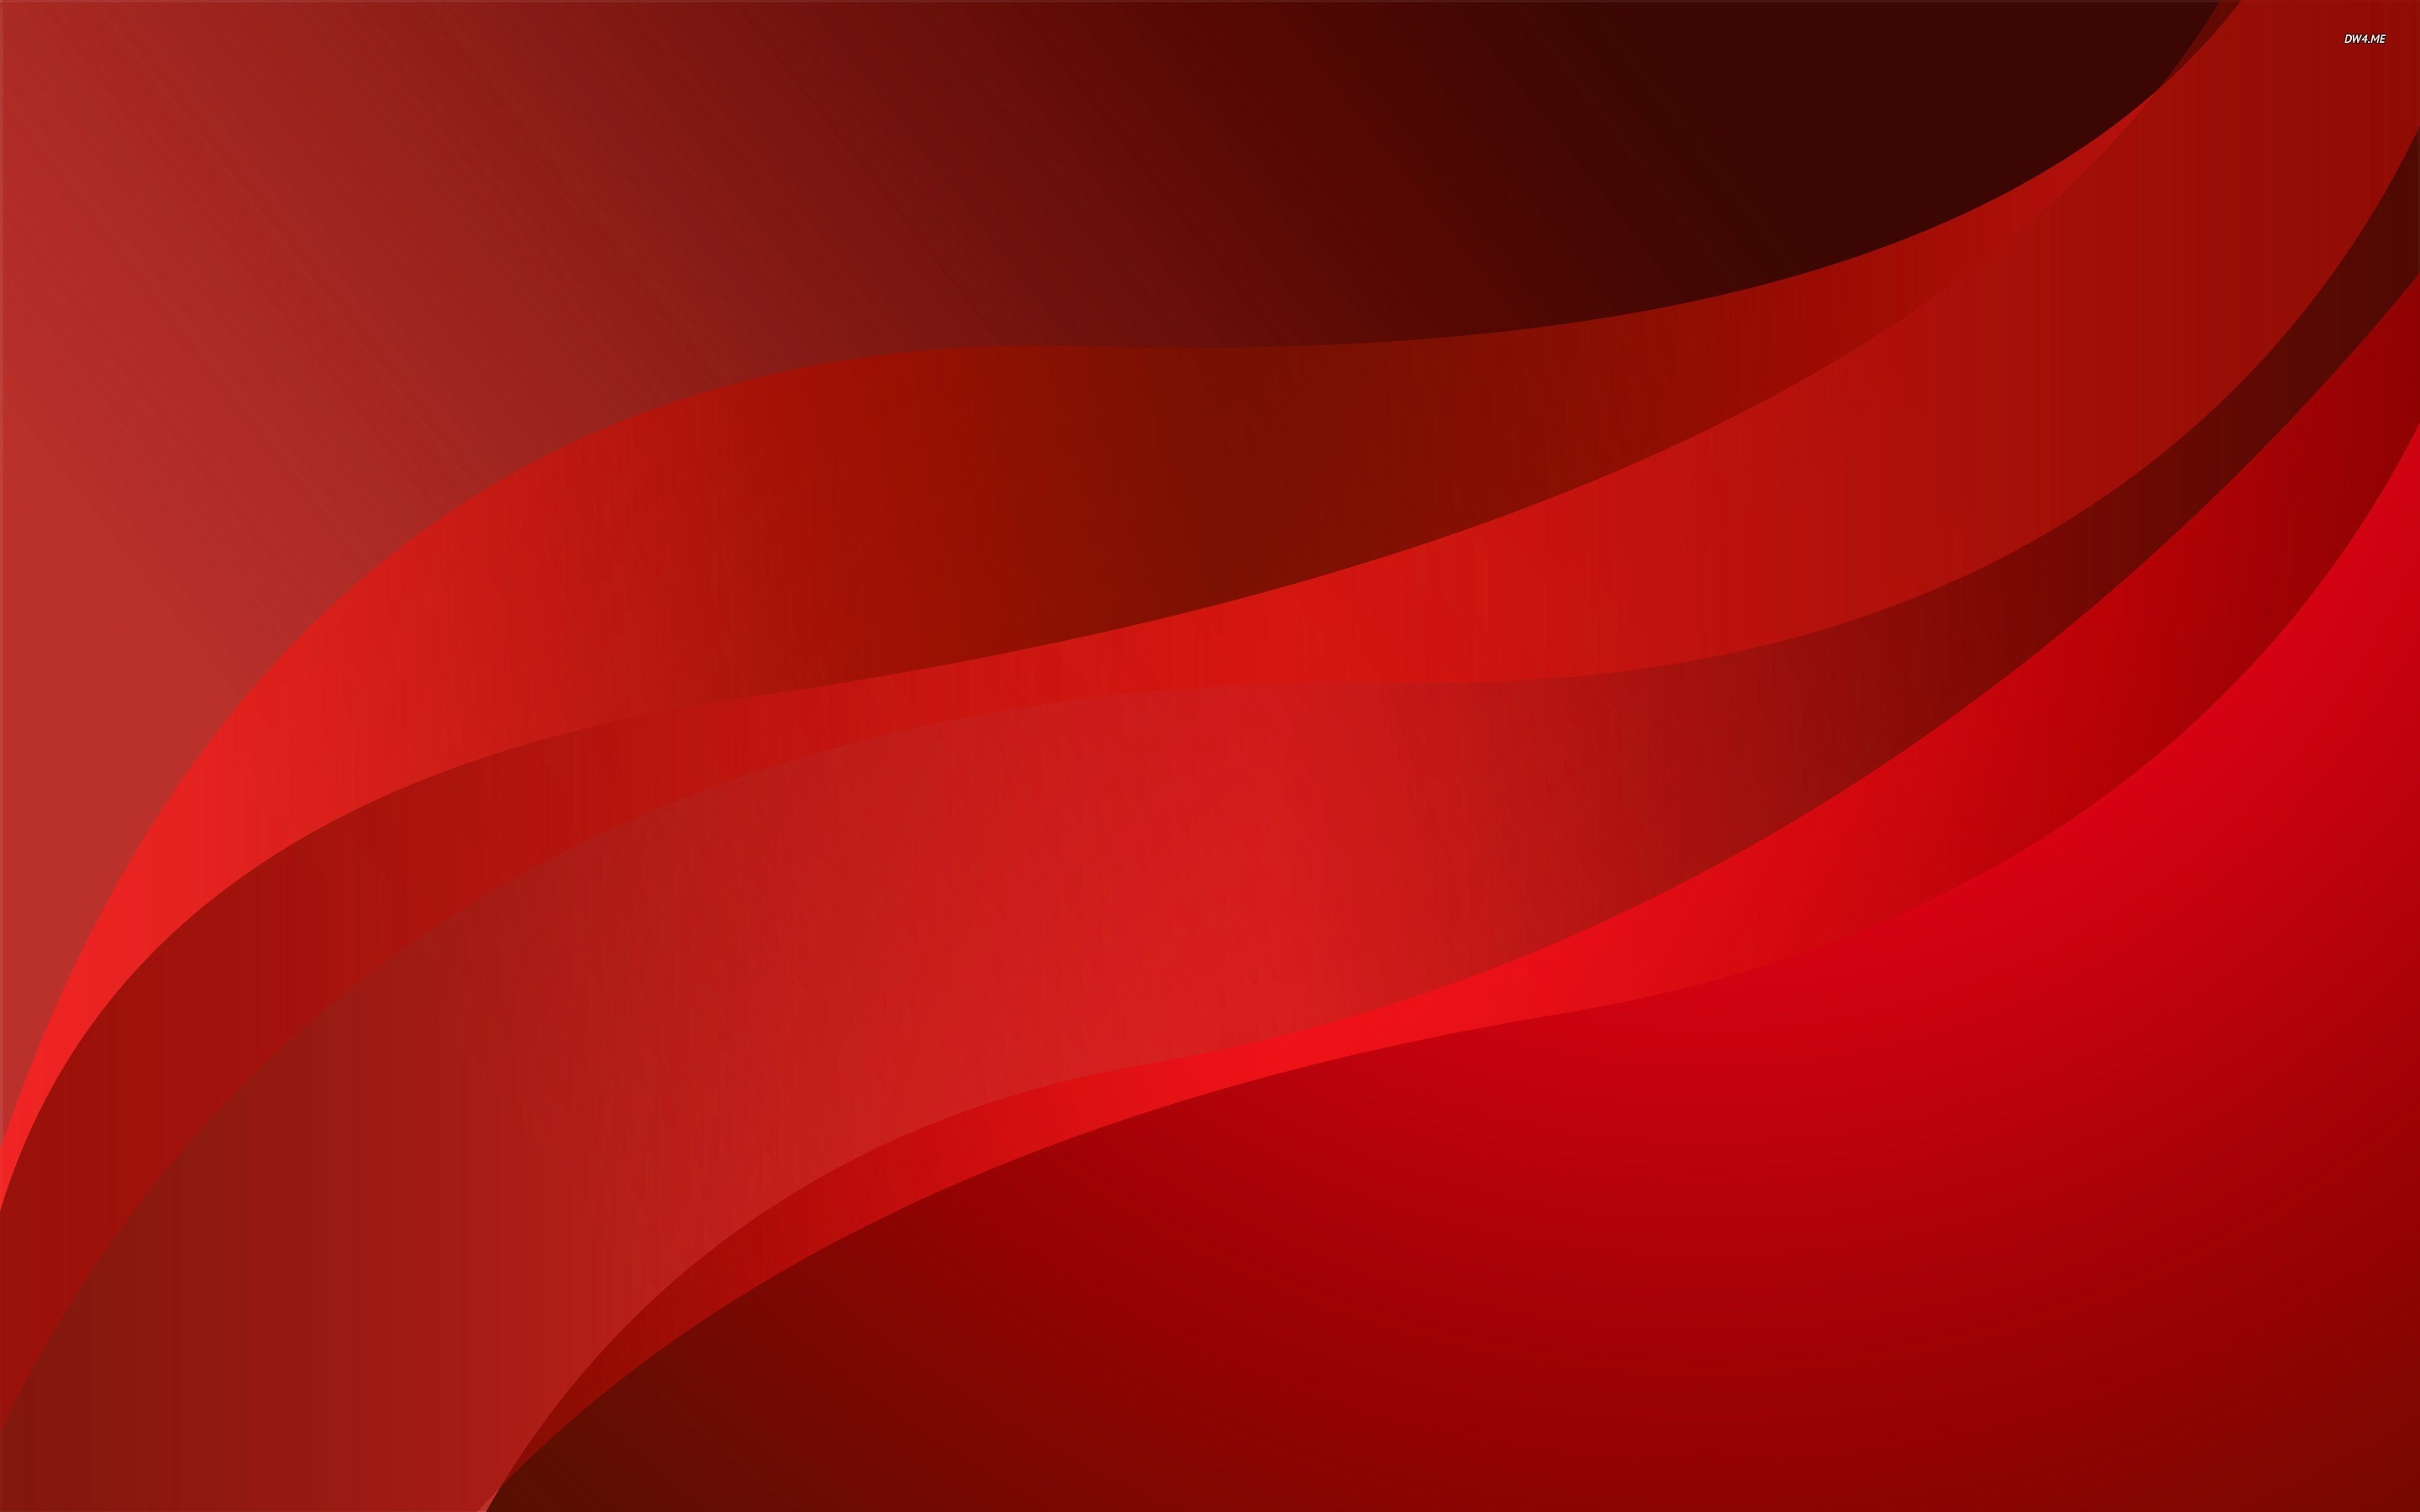 Red Abstract hd wallpaper